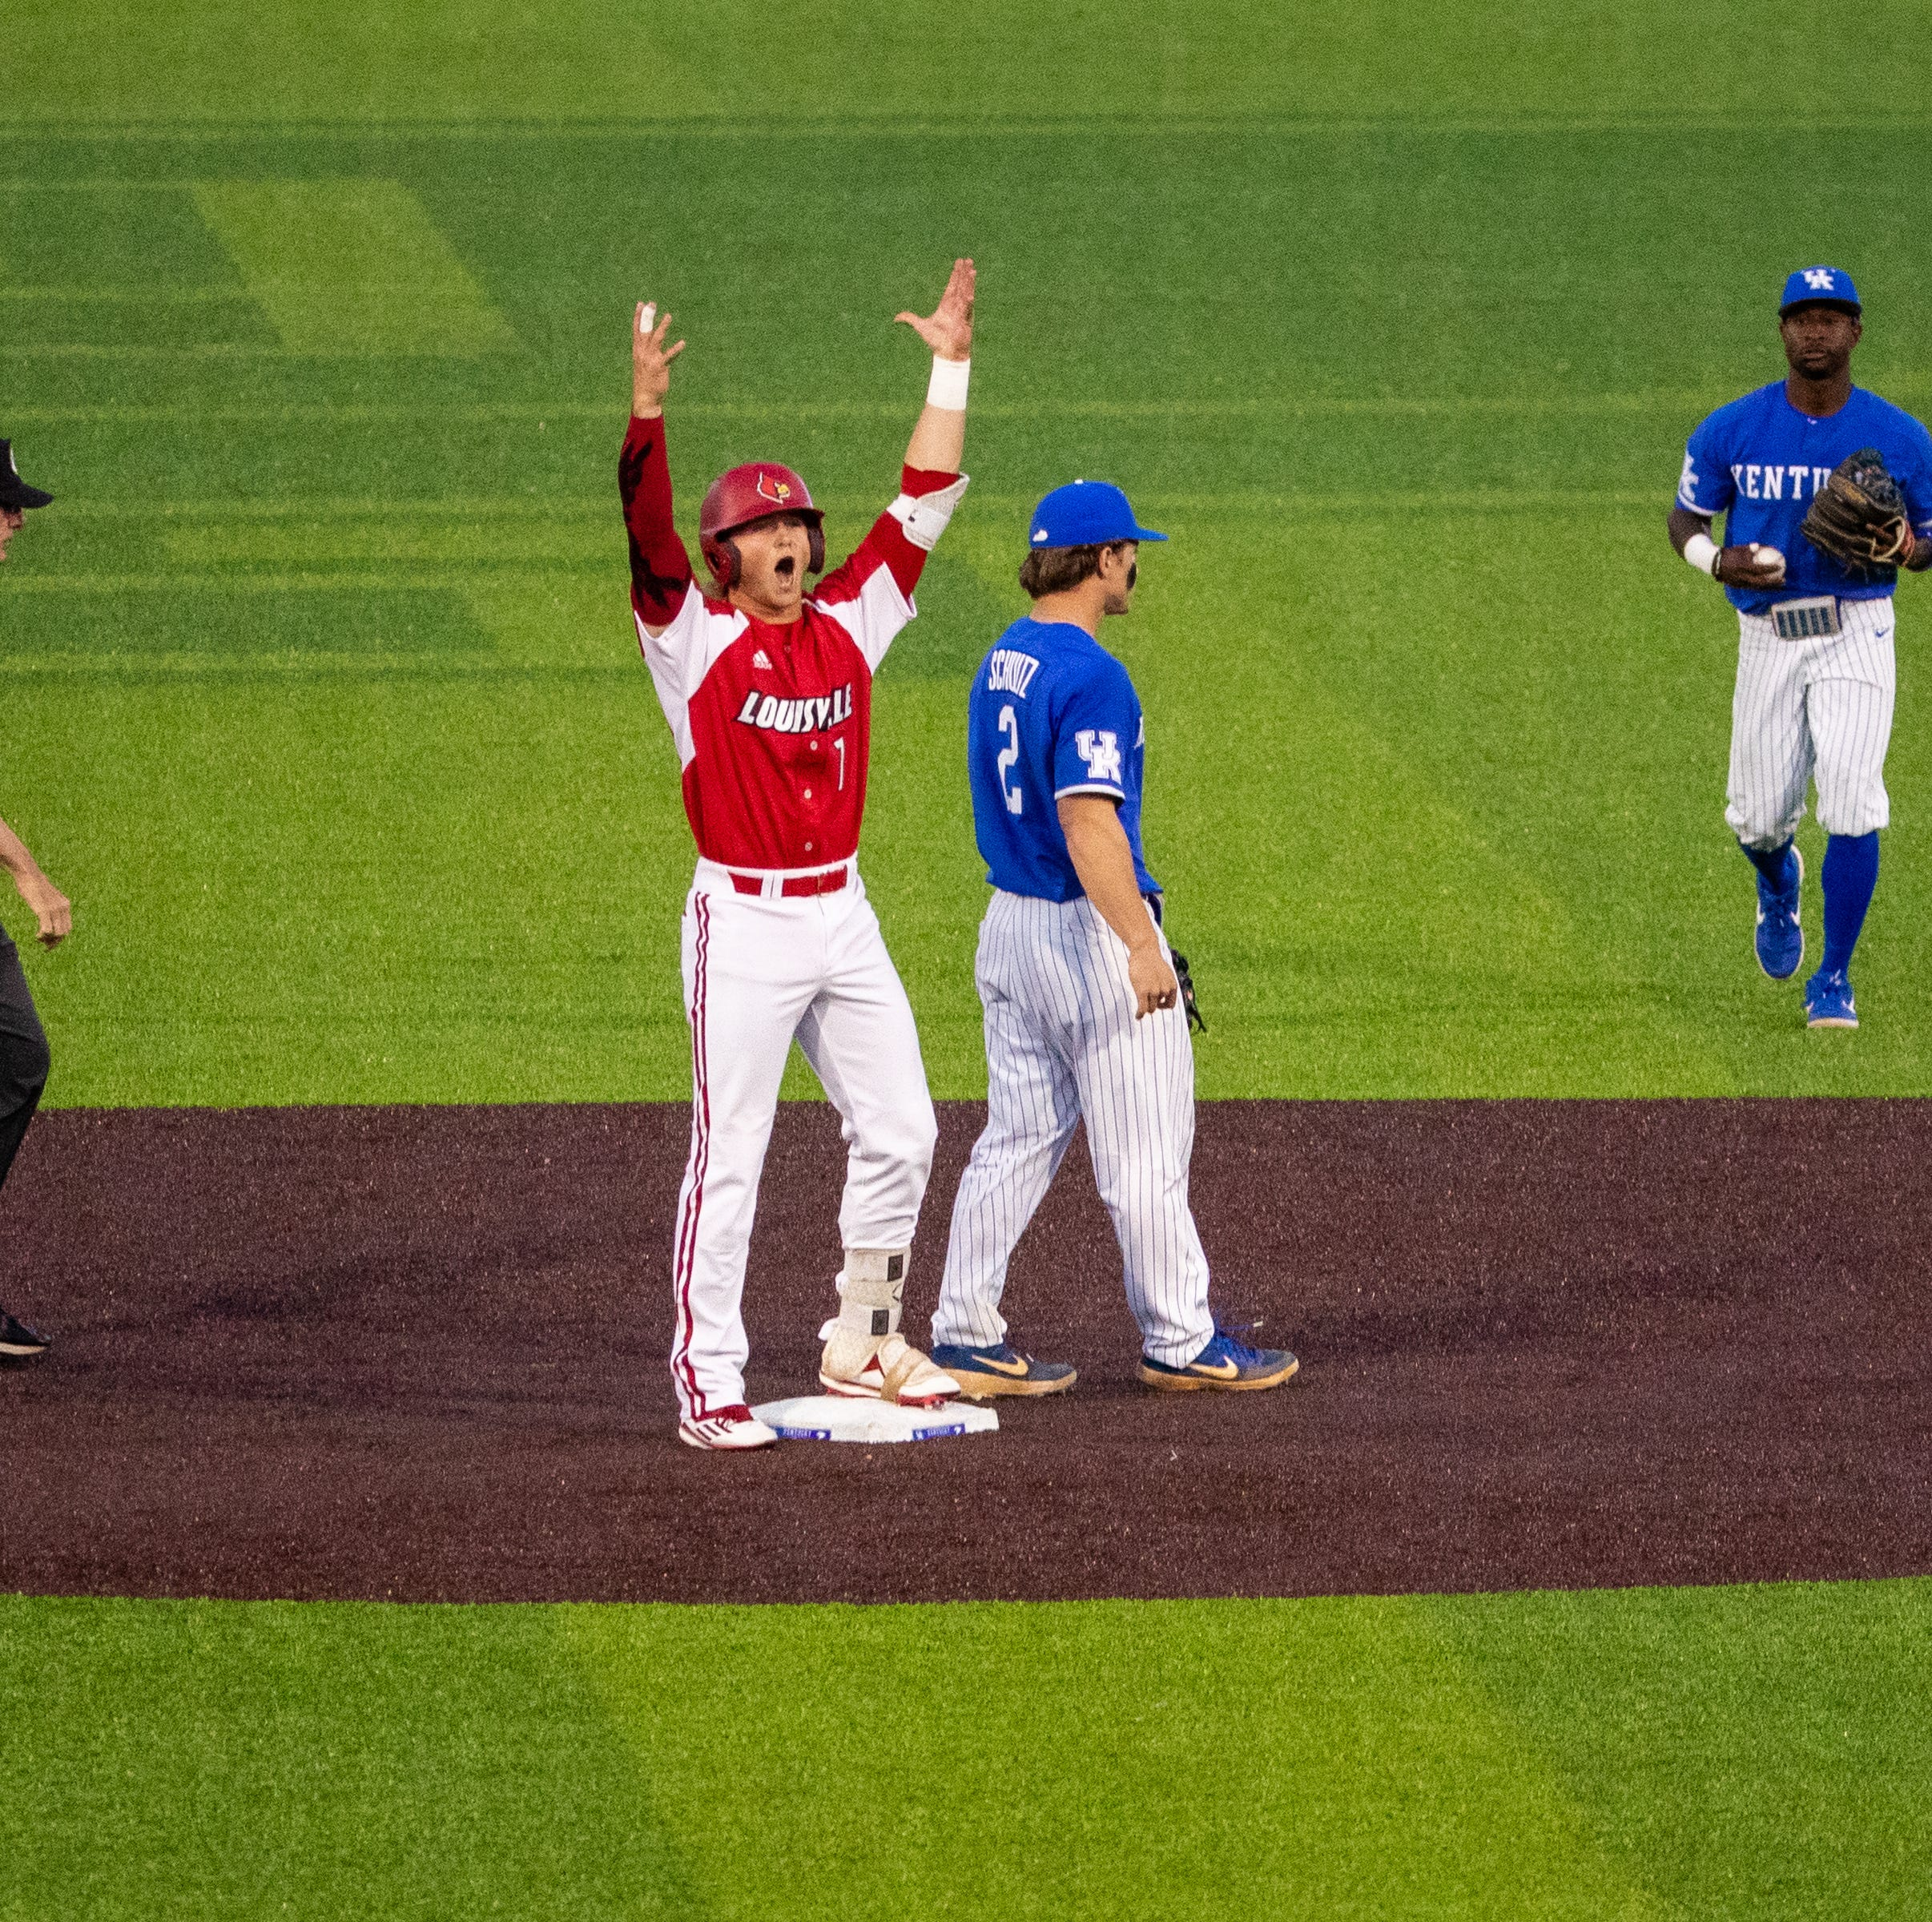 Louisville baseball offense continues surge in rout of Kentucky